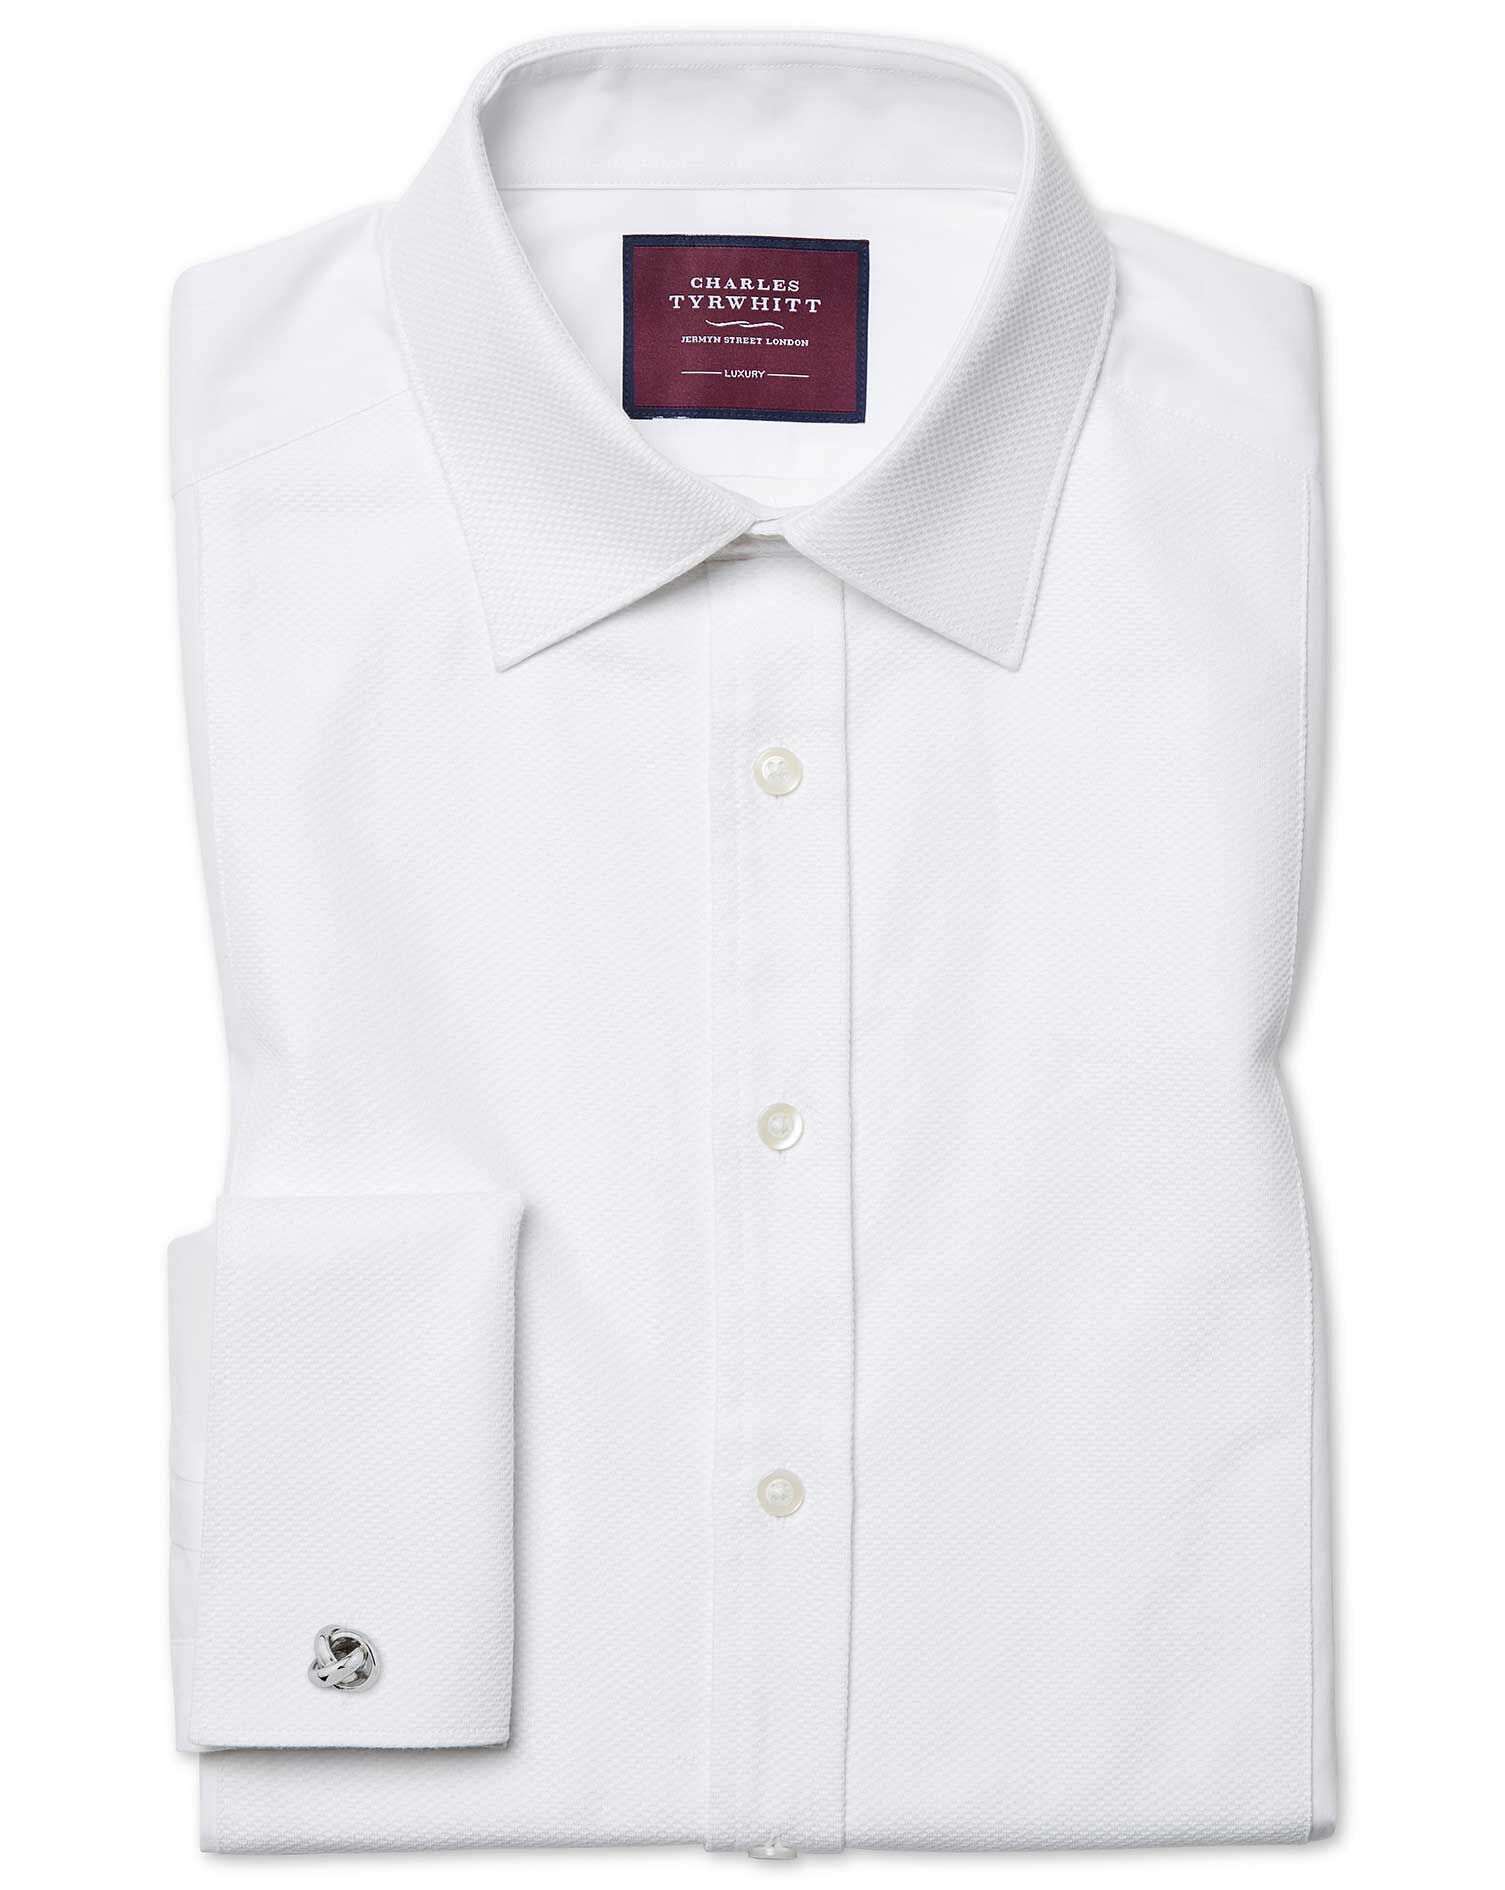 Slim Fit Luxury Marcella White Evening Egyptian Cotton Formal Shirt Double Cuff Size 18/35 by Charle